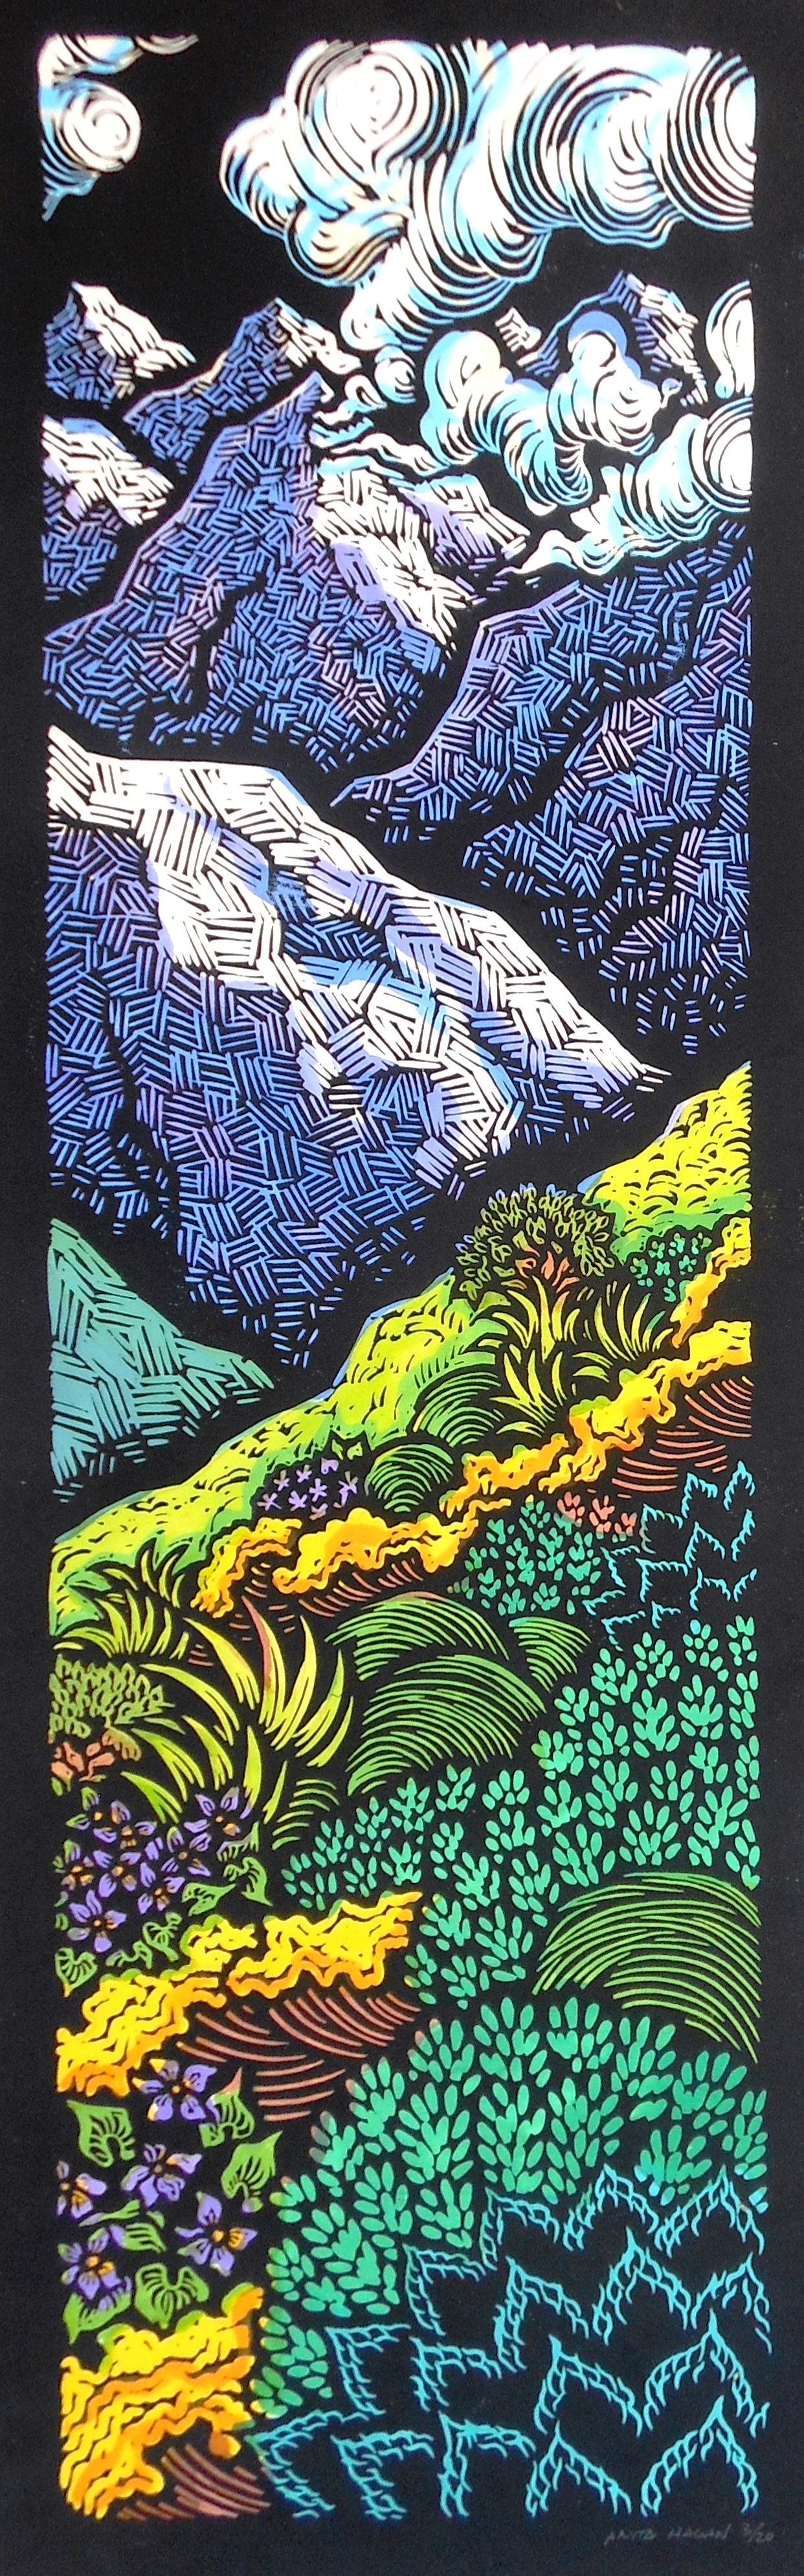 """""""The Road Less Traveled I""""- 8"""" x 30""""- Linoleum block print with watercolor and gold leaf on handmade Kozo paper."""